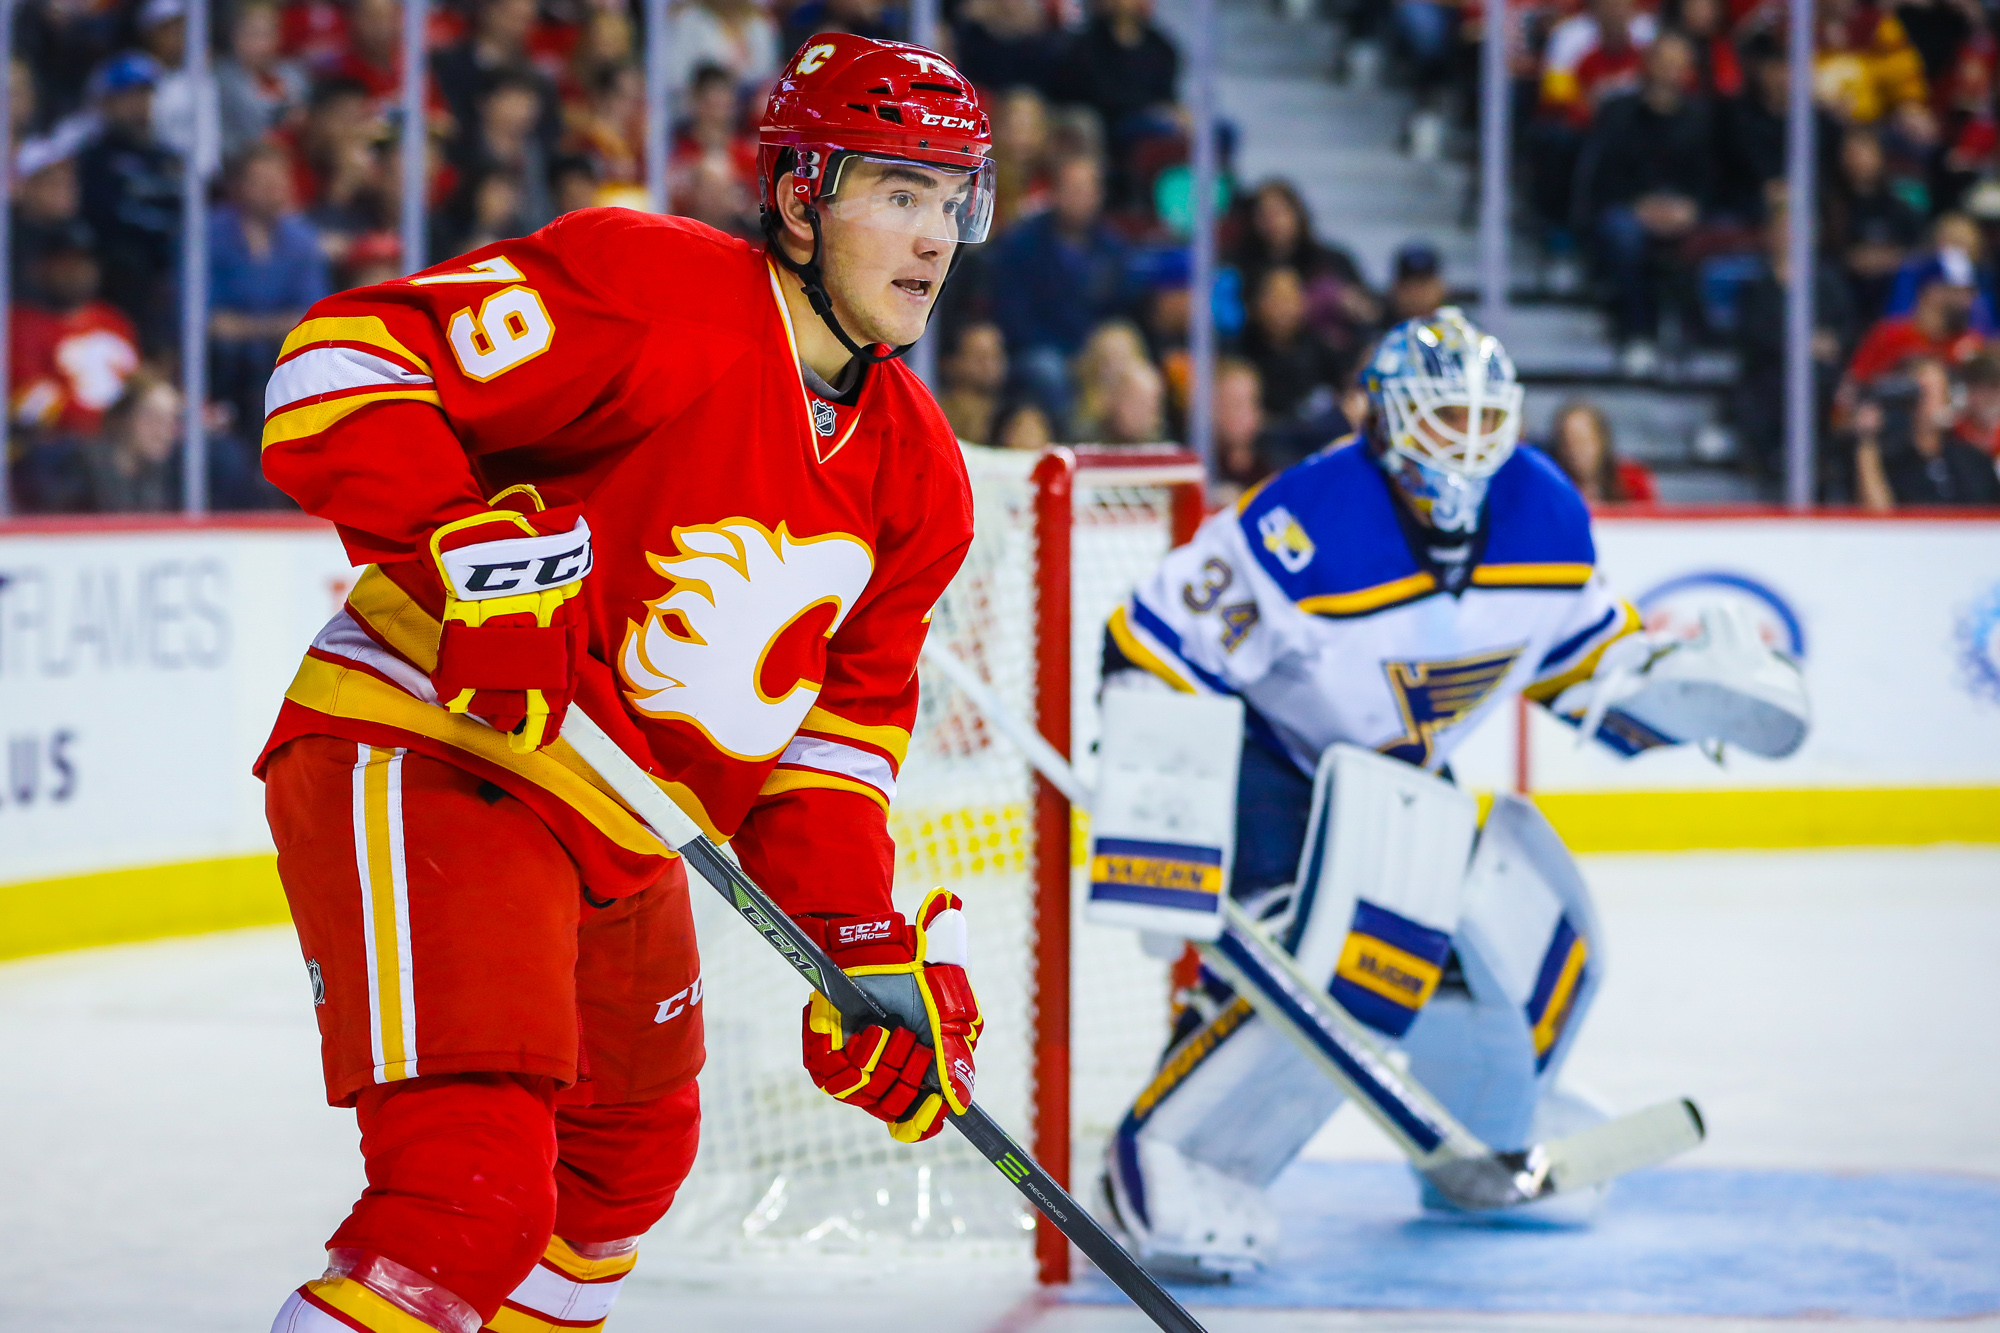 9634906-nhl-st.-louis-blues-at-calgary-flames